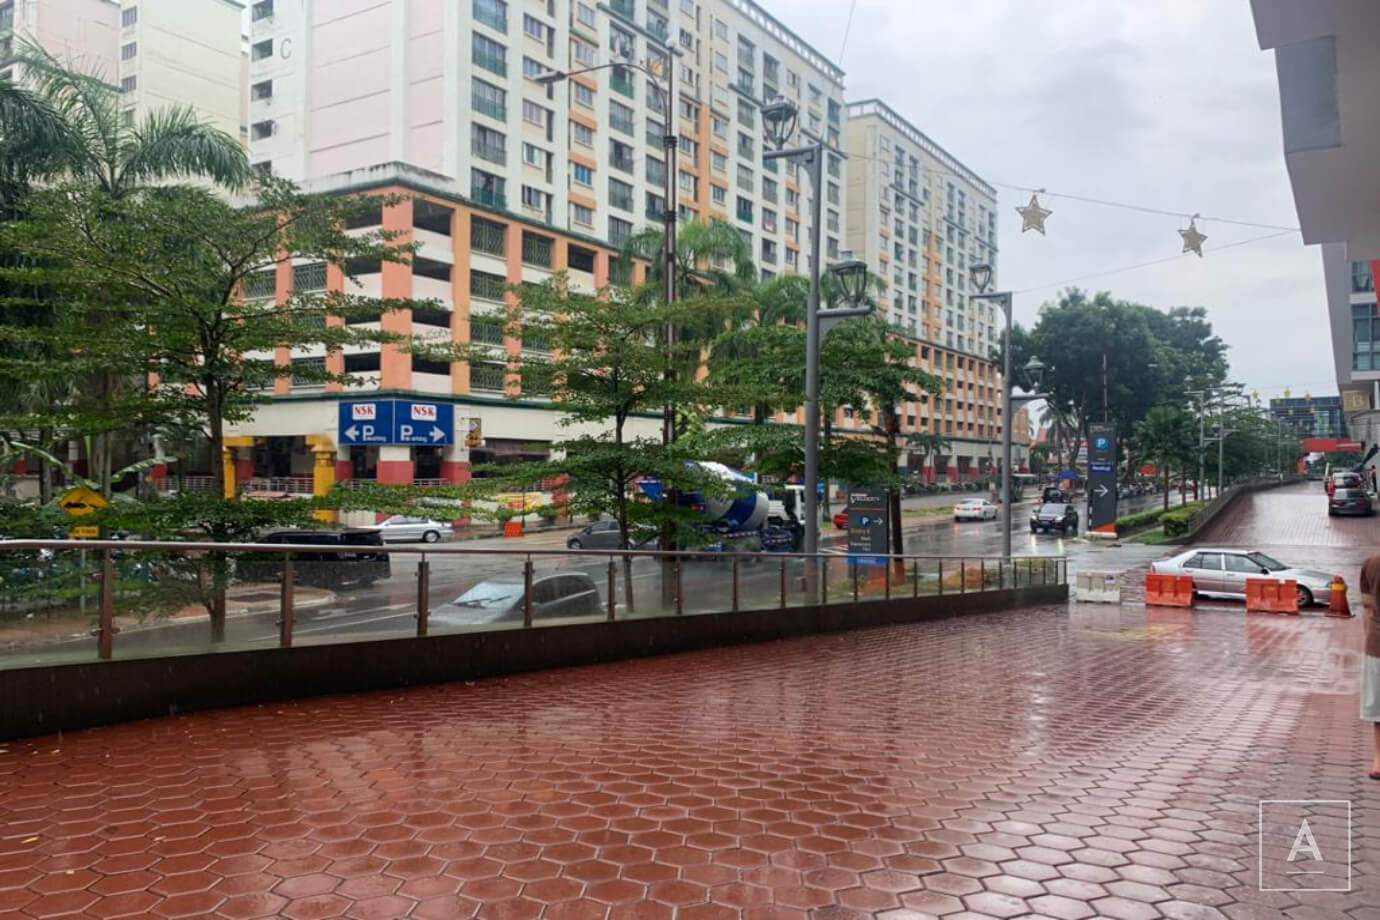 Sunway Velocity Signature 2,Kuala Lumpur, ,3 BathroomsBathrooms,Shop Office / Retail,For Sale,Sunway Velocity,2189